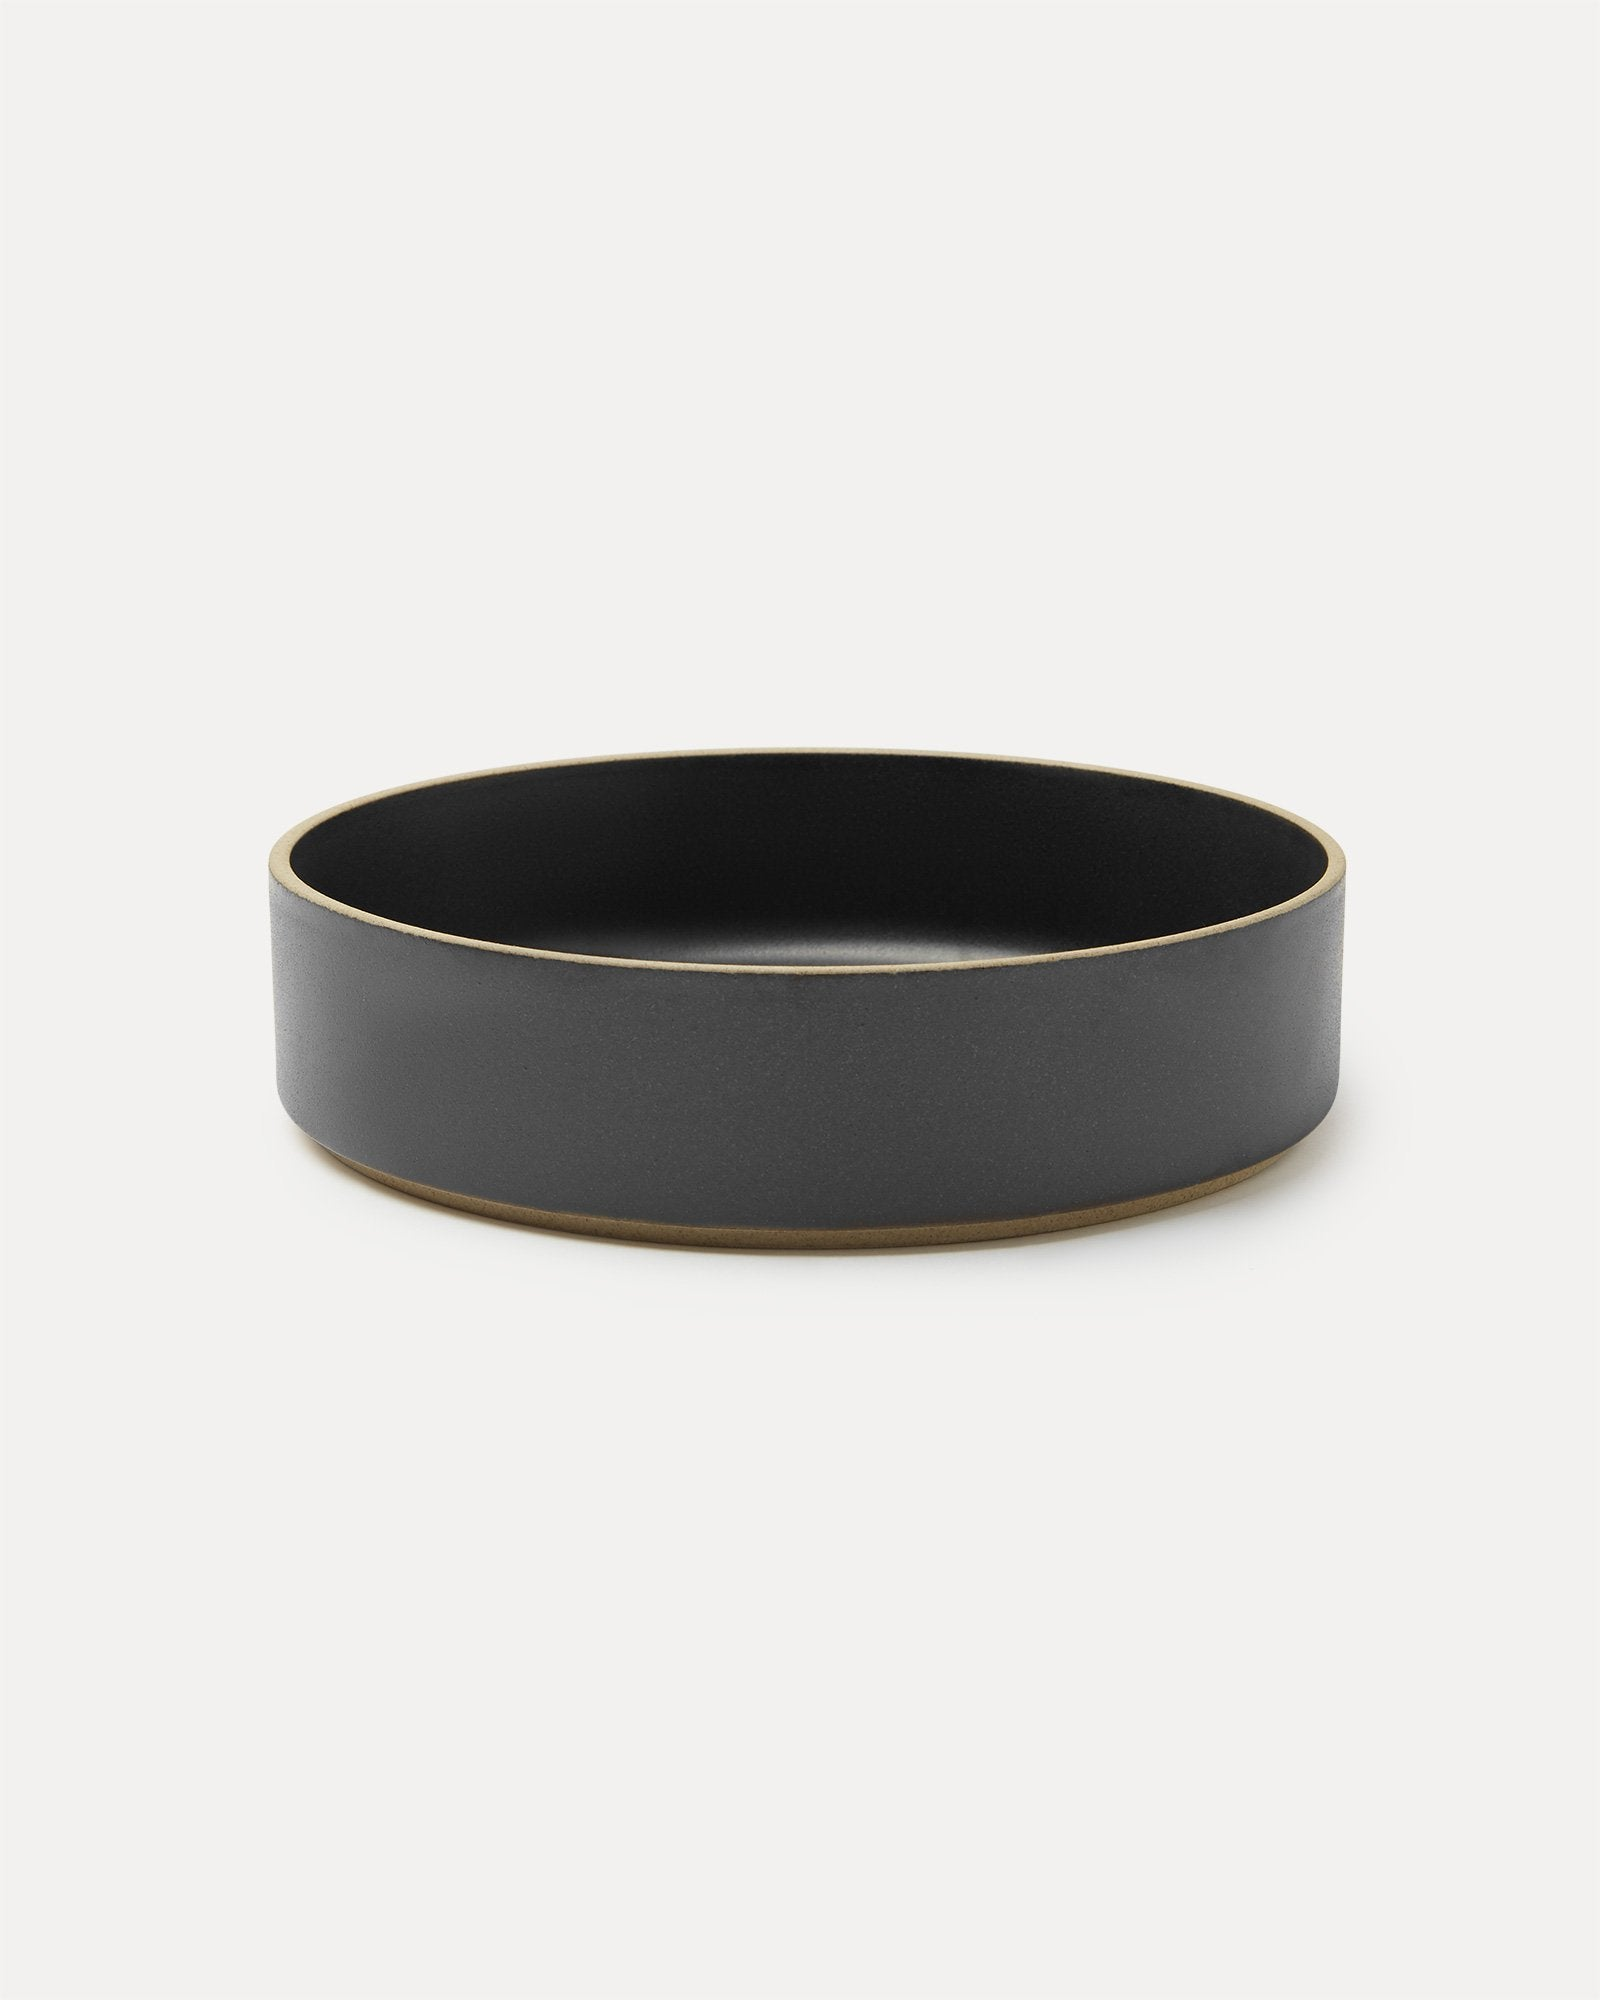 Hasami Porcelain Serving Bowl Black